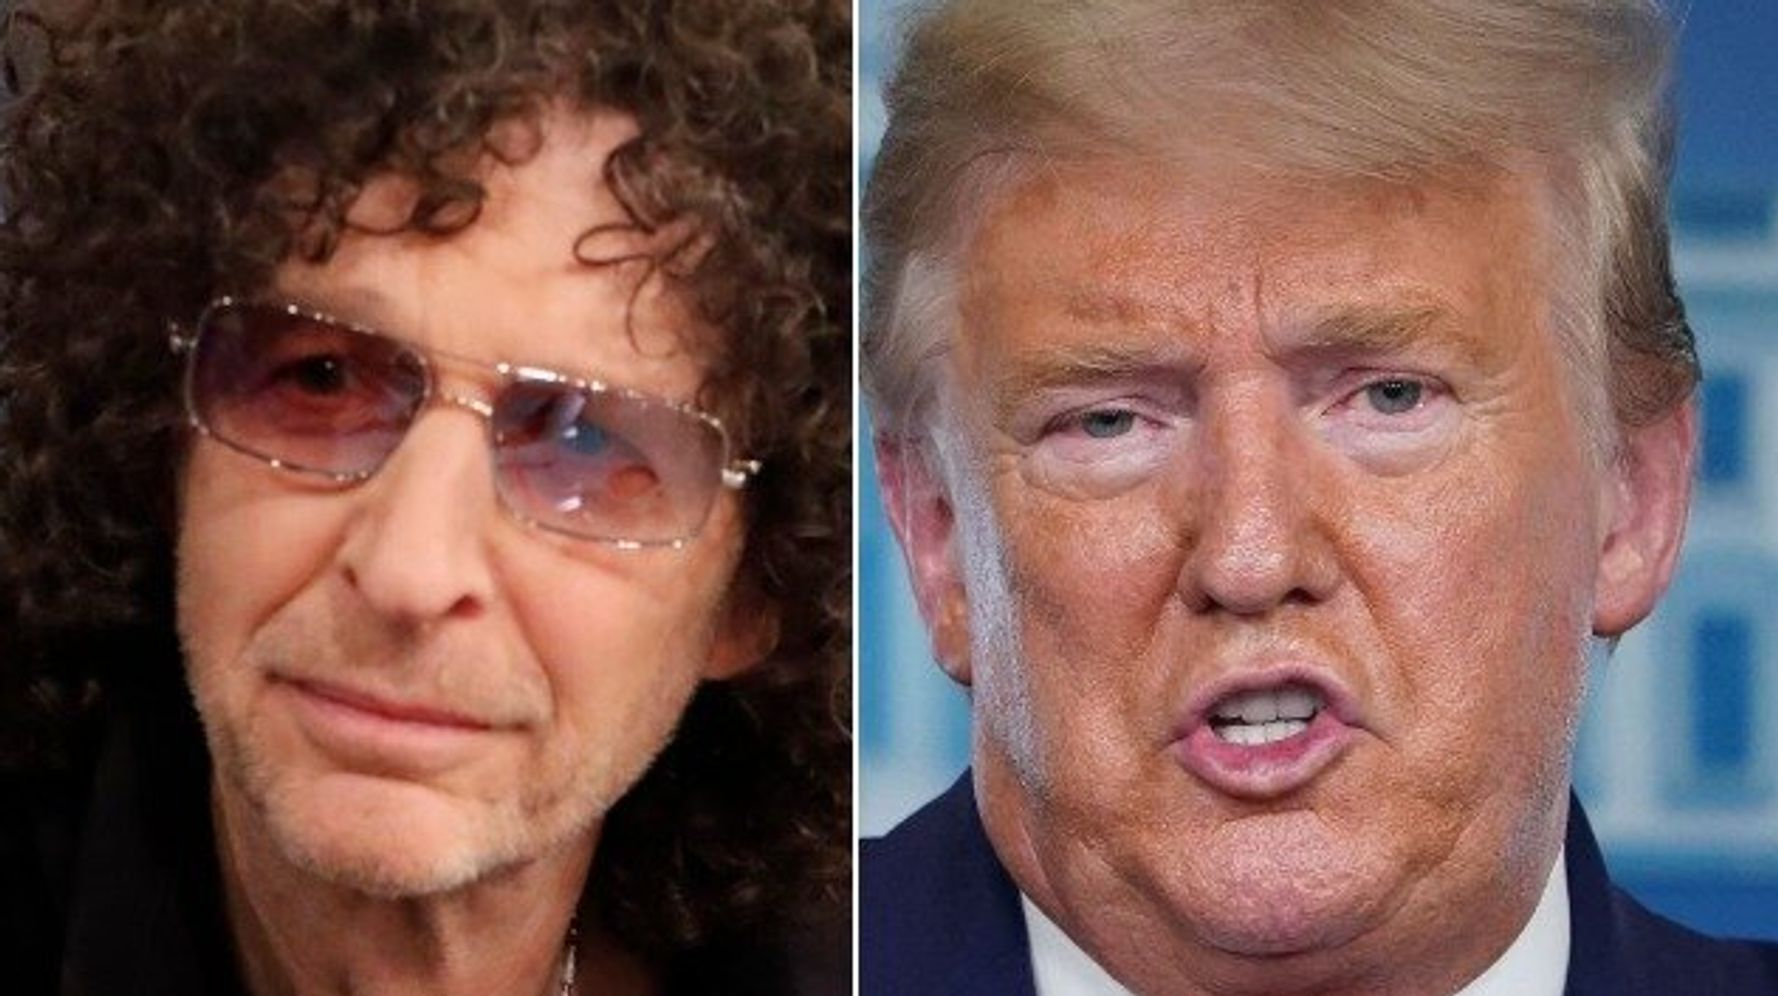 Howard Stern Makes A Stark Prediction For Trump's Post-White House Plans